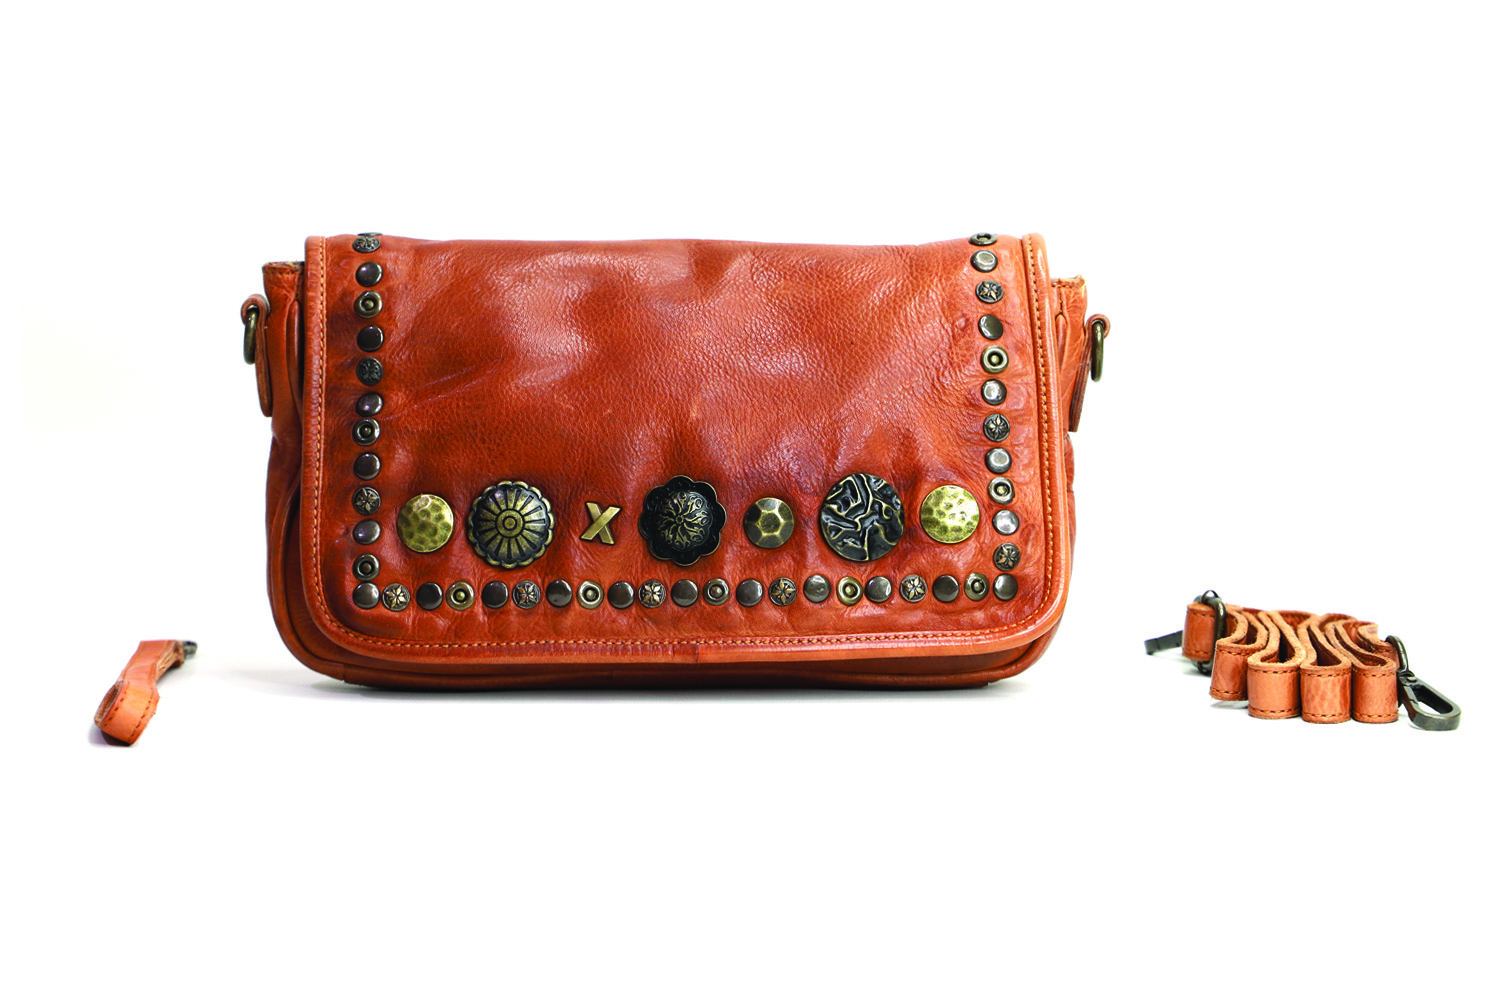 Genuine leather and stud clutch